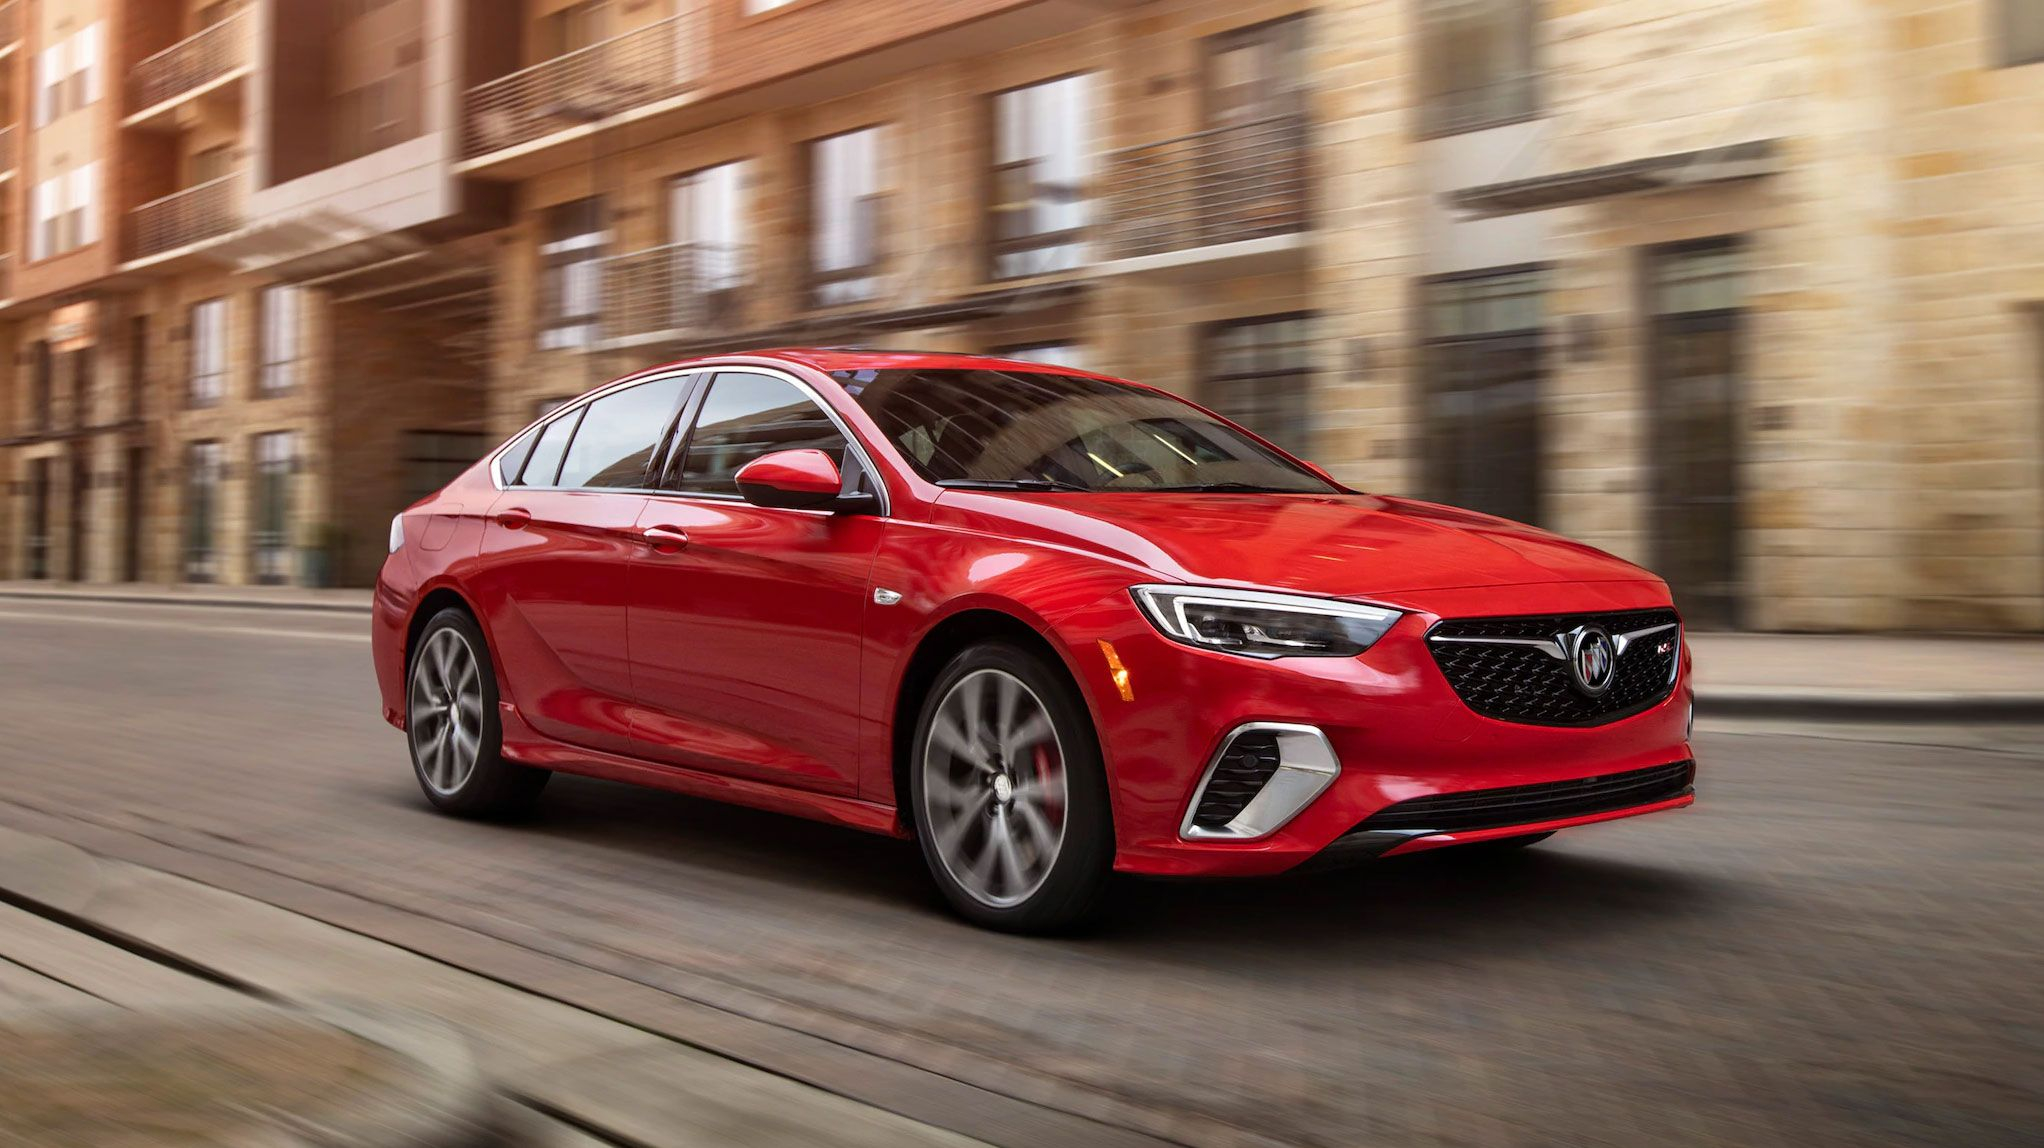 2020 Buick Regal Gs Review, Pricing, And Specs New 2021 Buick Regal Gs Colors, Changes, Horsepower